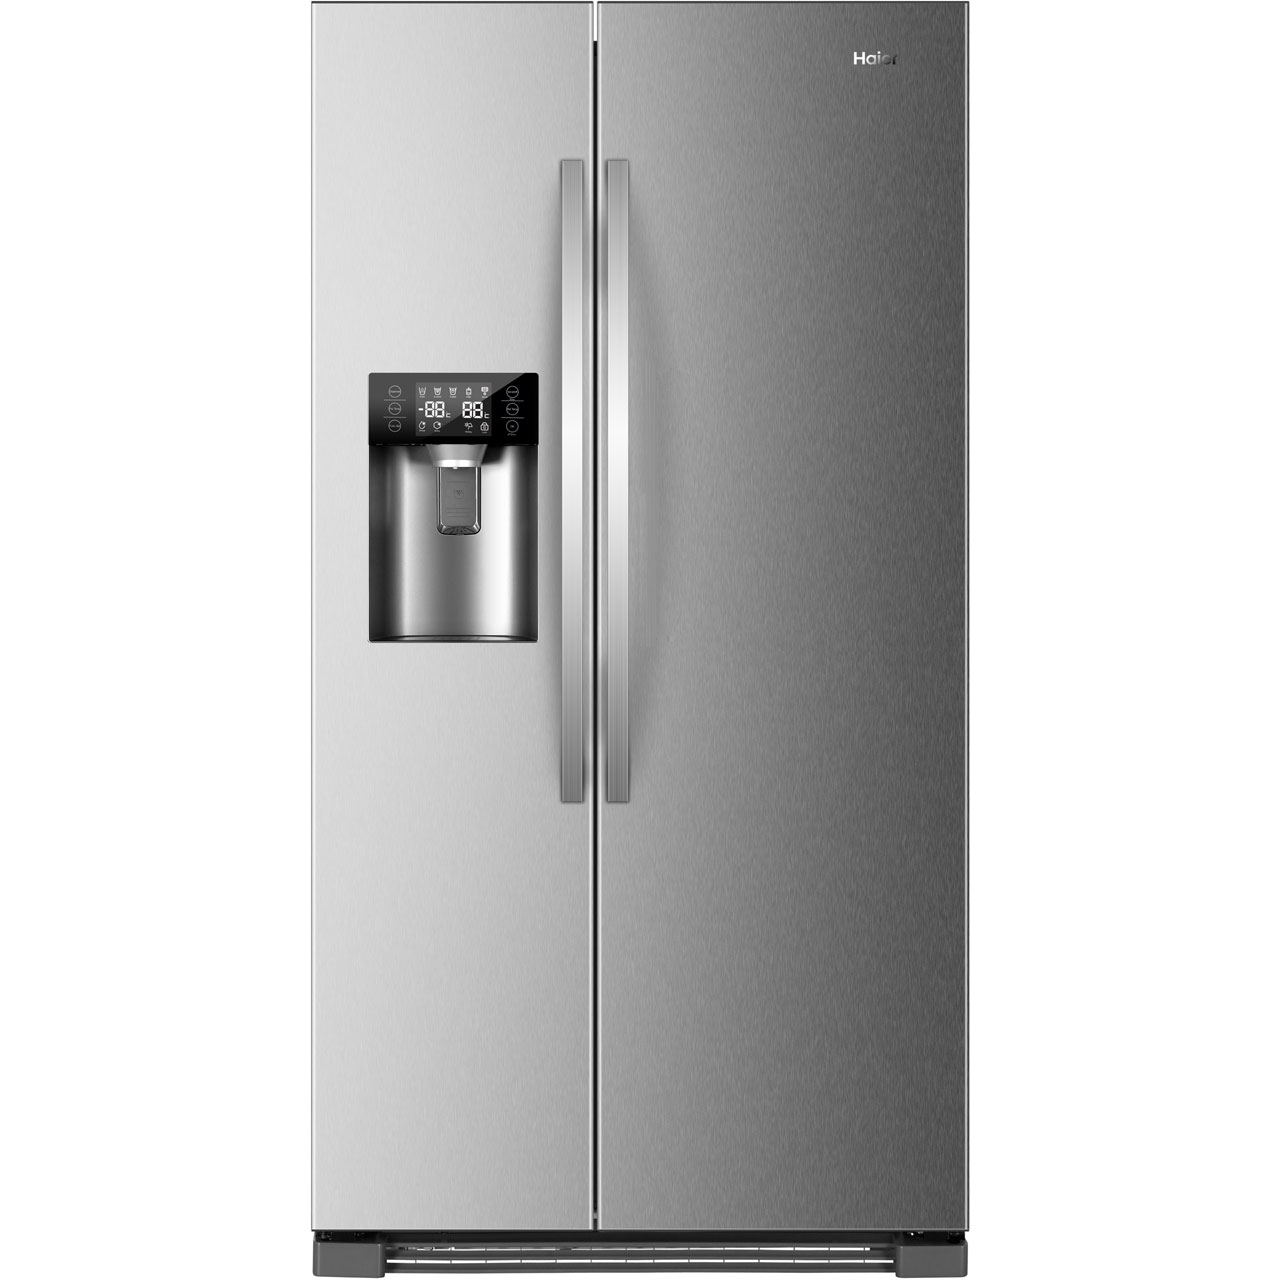 hrf 630im7 ssl haier american fridge freezer. Black Bedroom Furniture Sets. Home Design Ideas